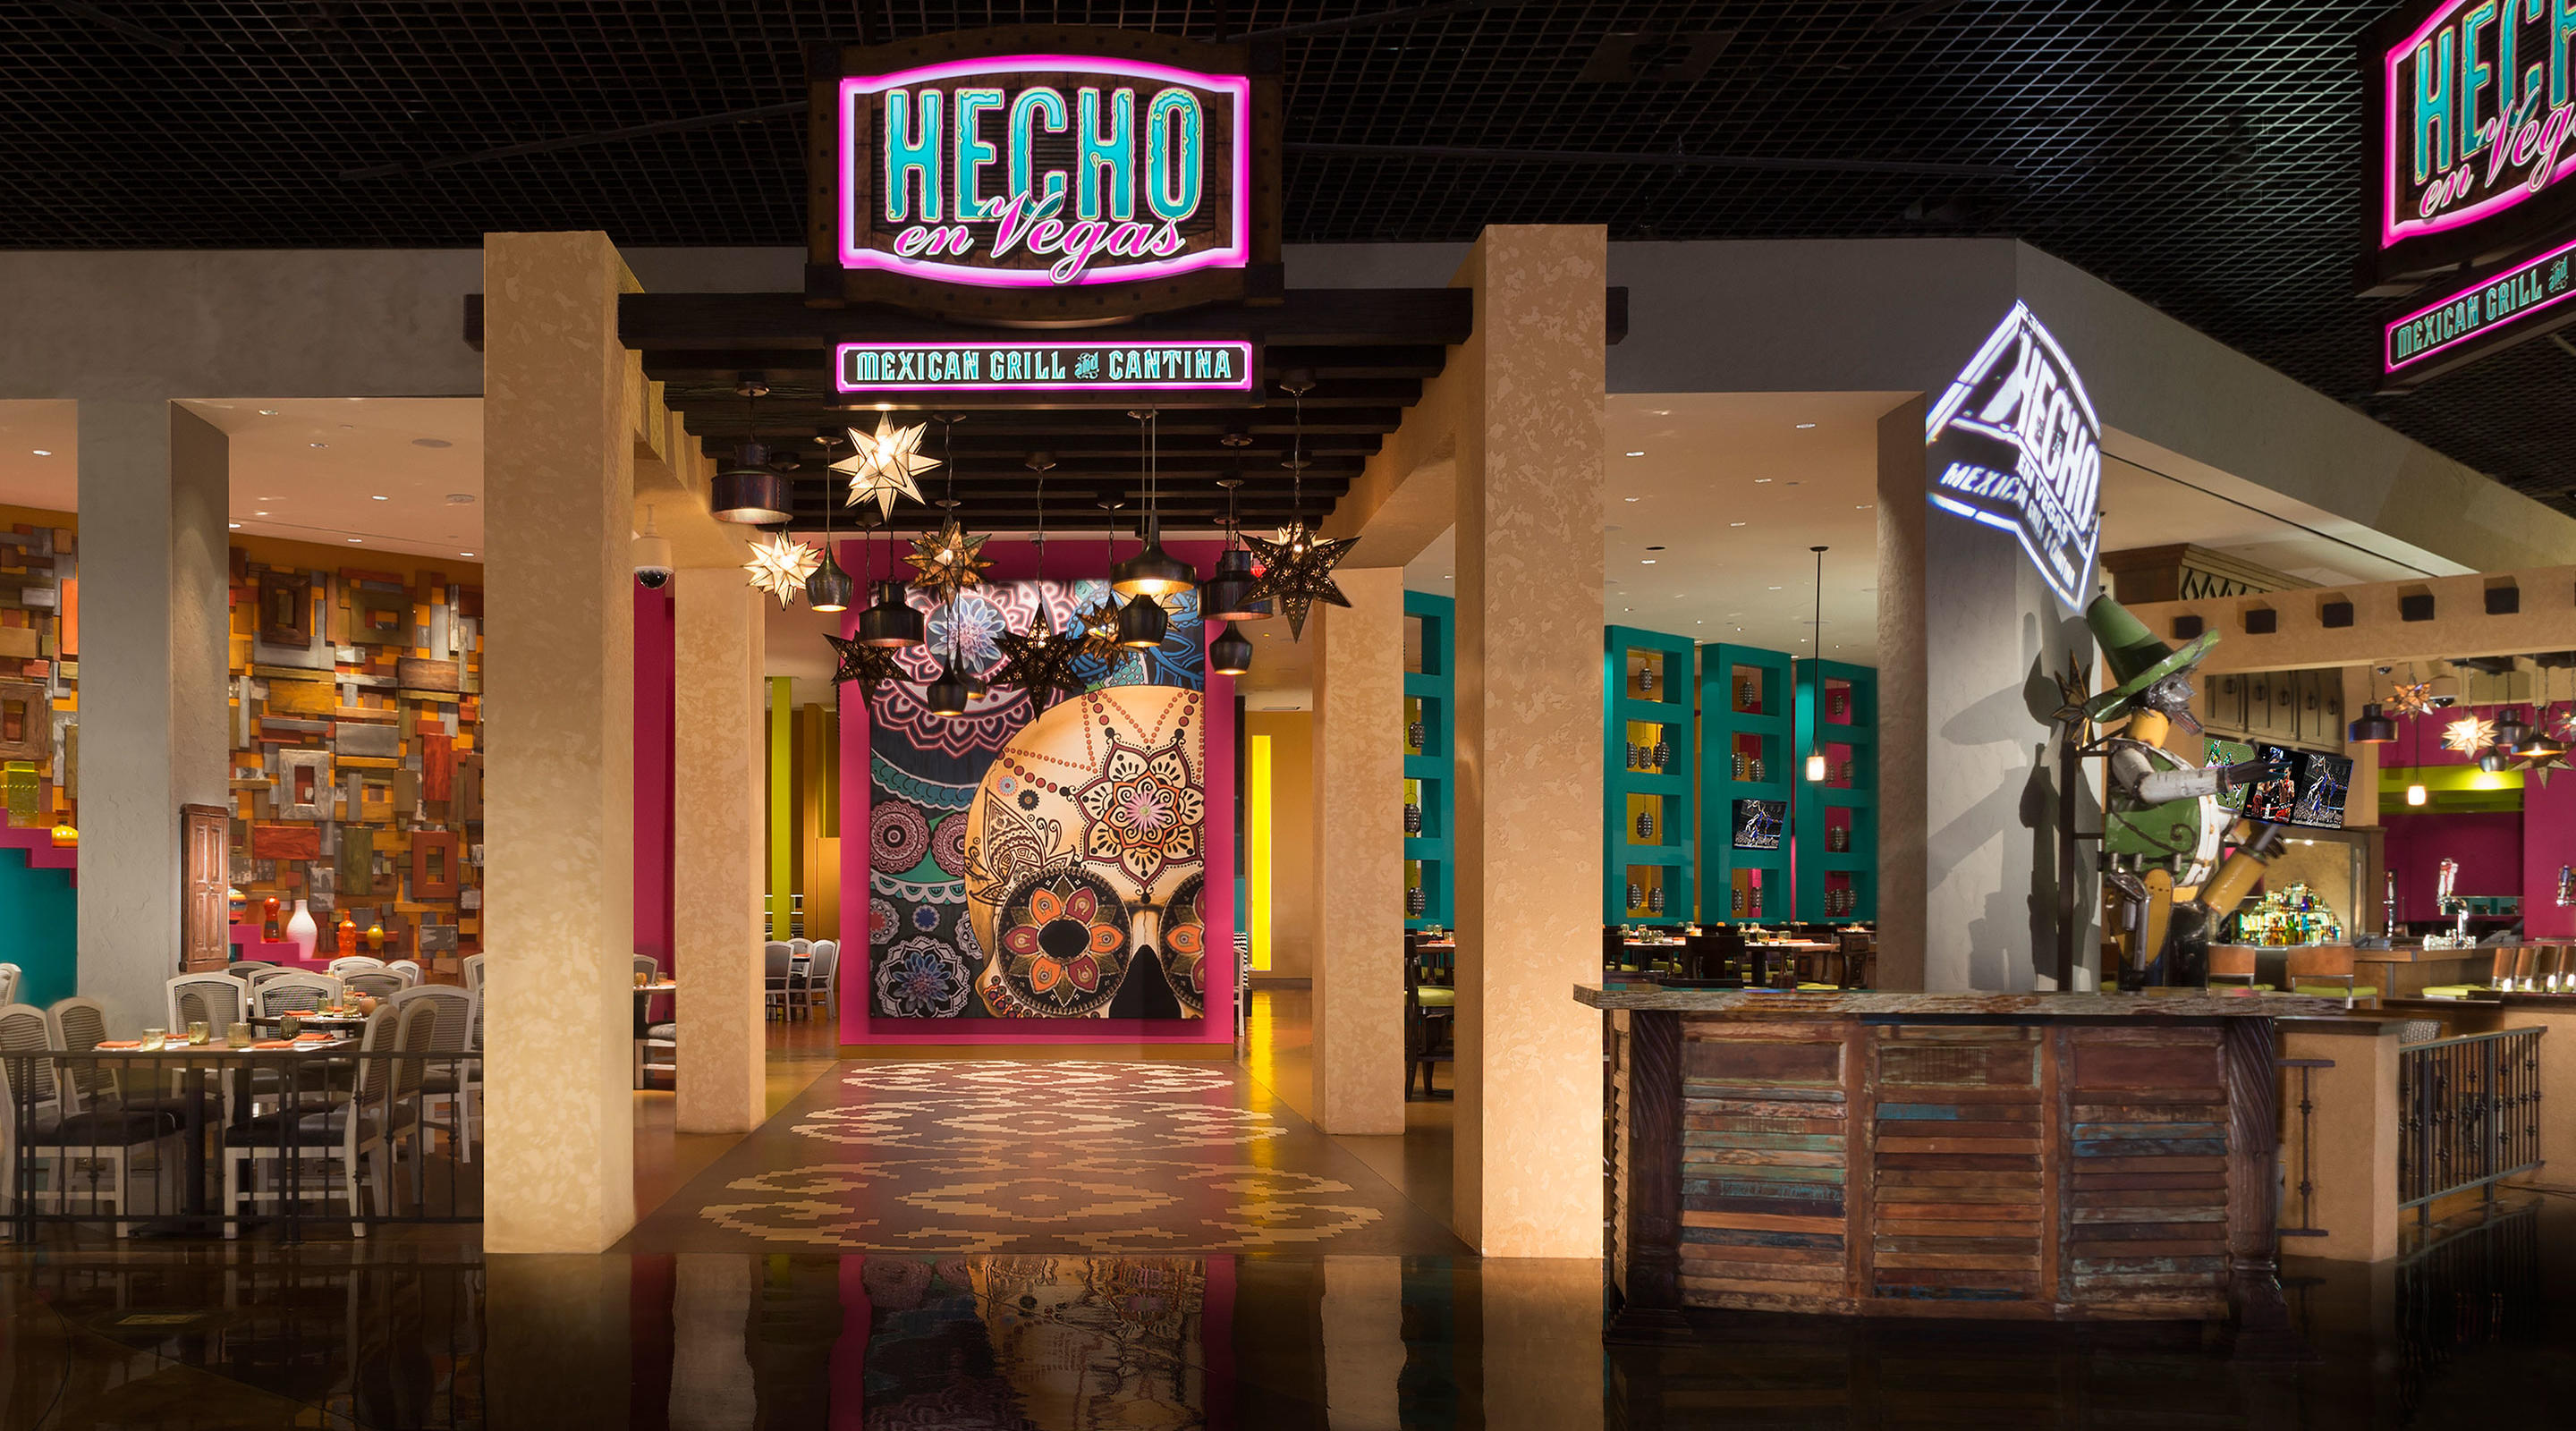 The entry to Hecho en Vegas at MGM Grand